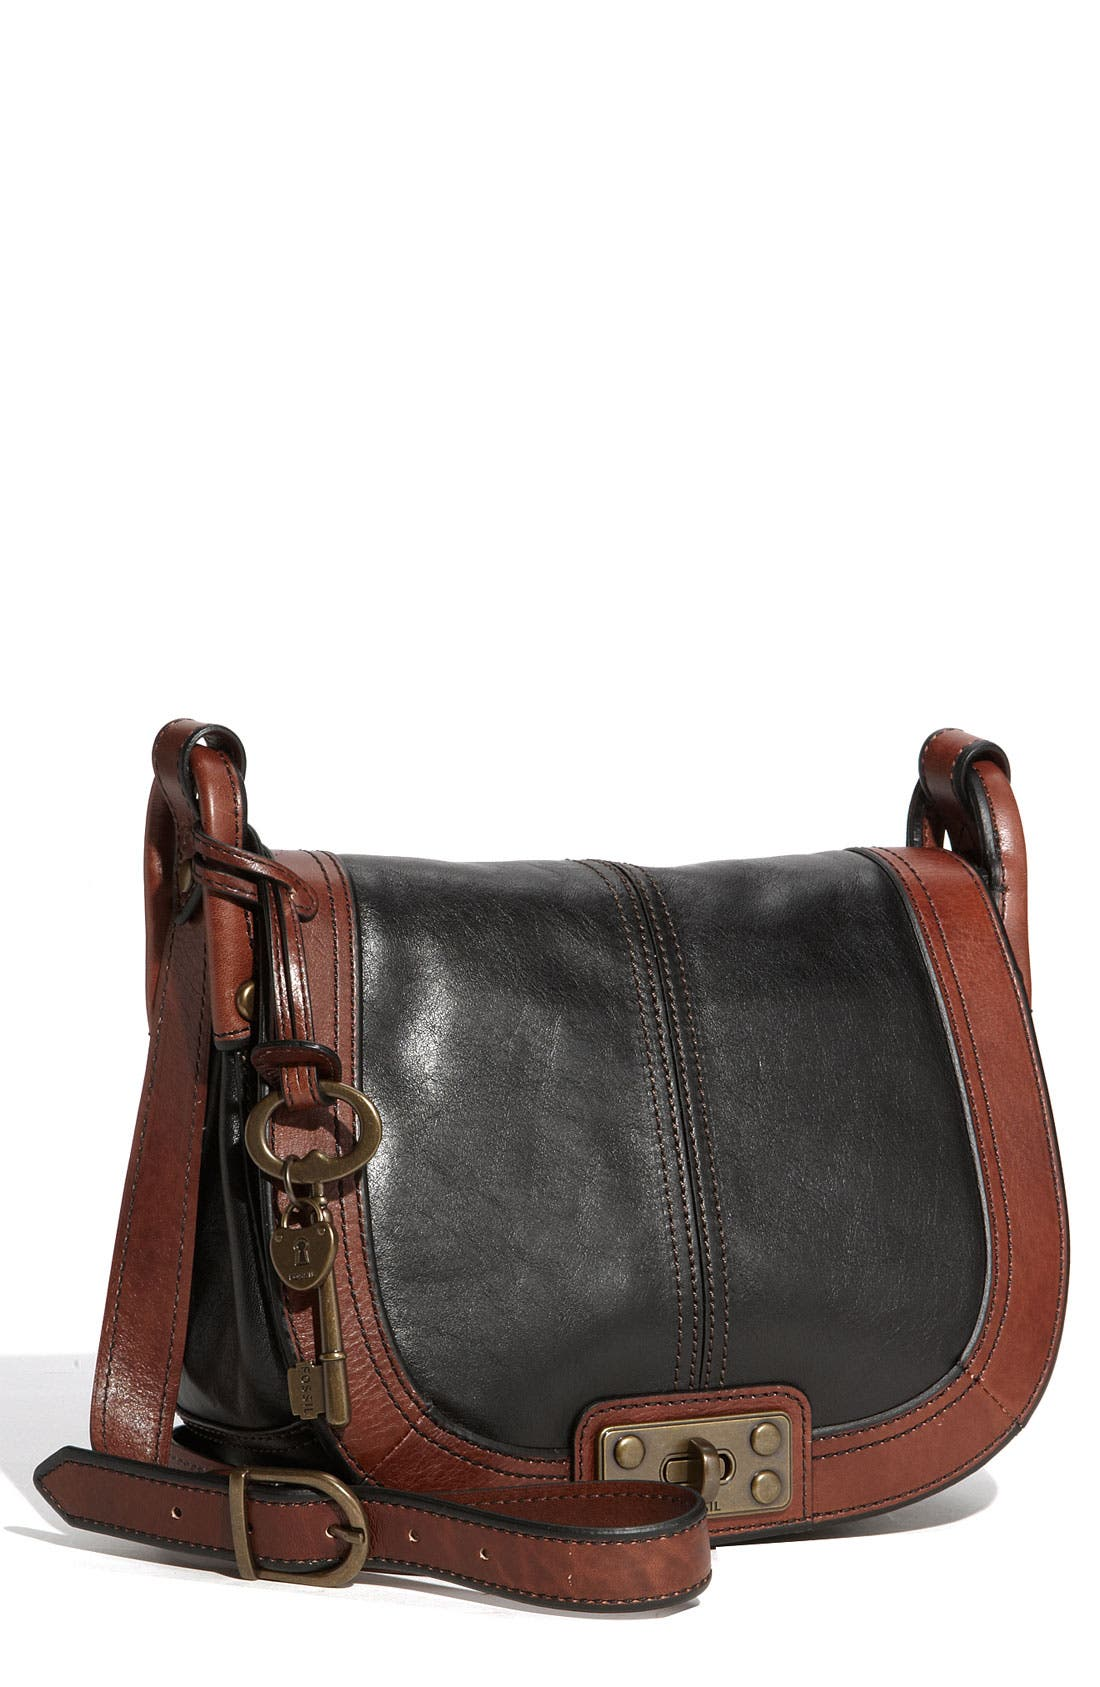 Alternate Image 1 Selected - Fossil Leather Crossbody Bag